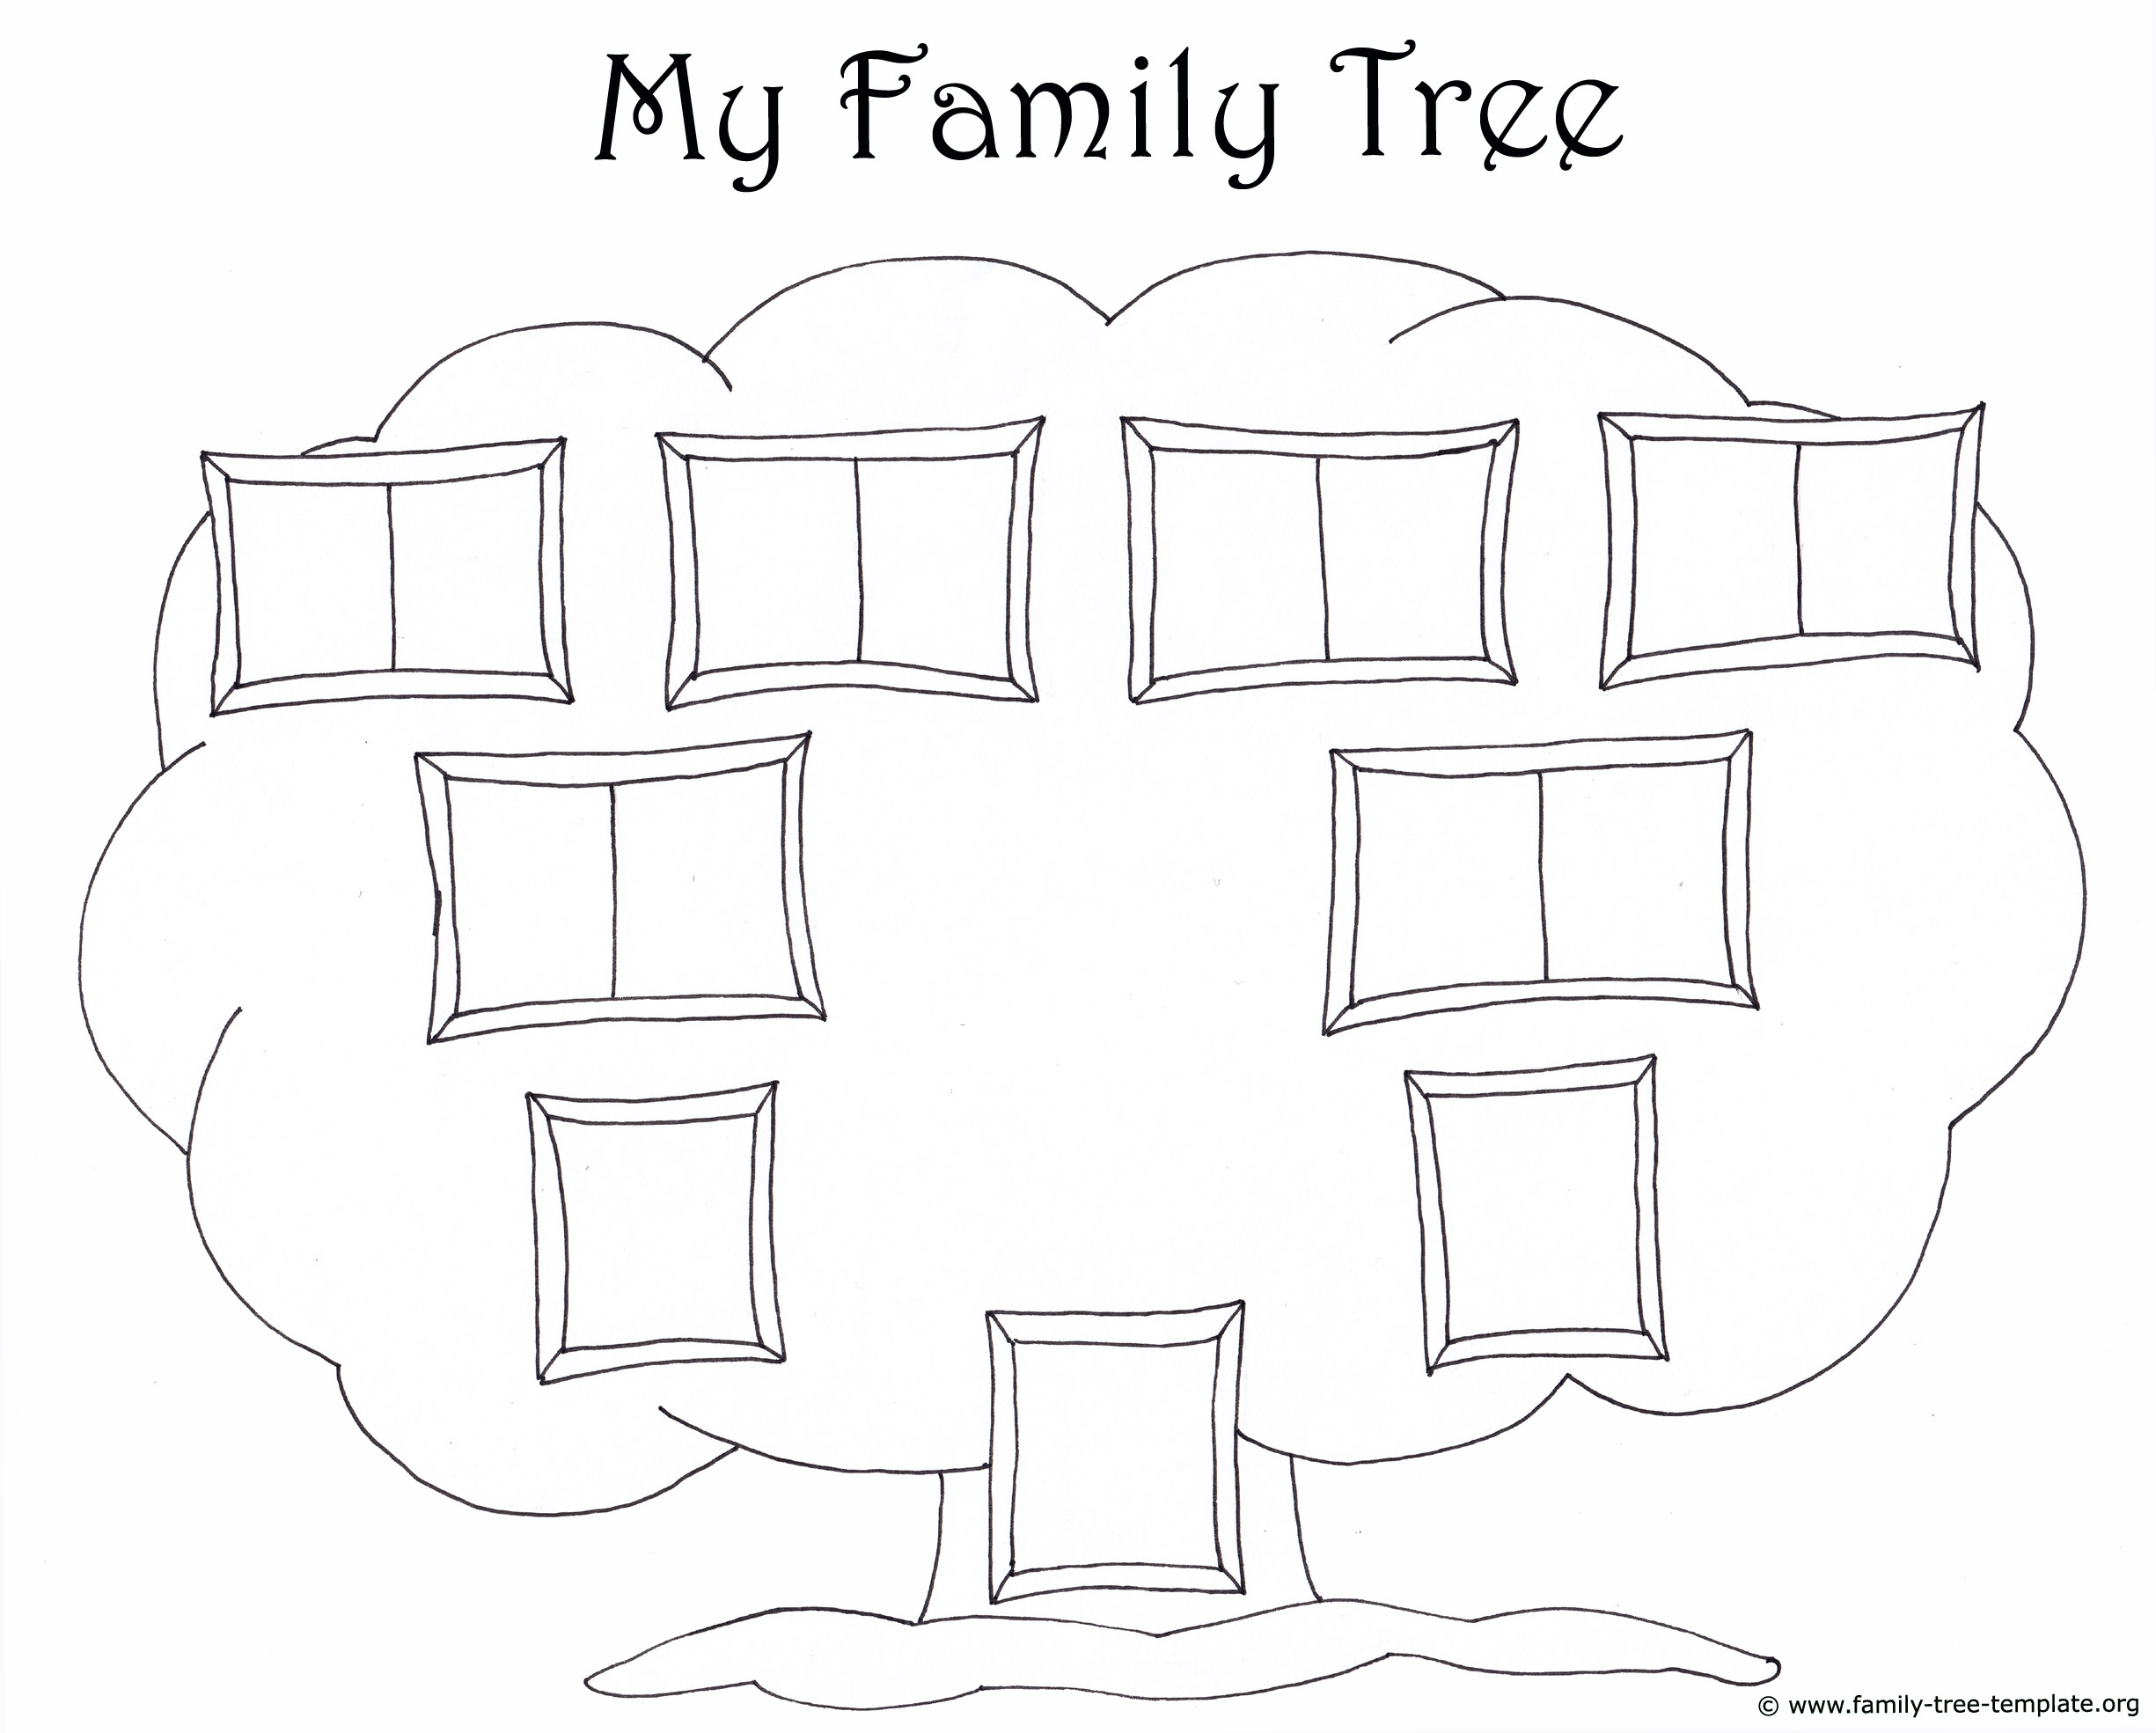 Family tree template for kids printable genealogy charts for Genealogy templates for family trees